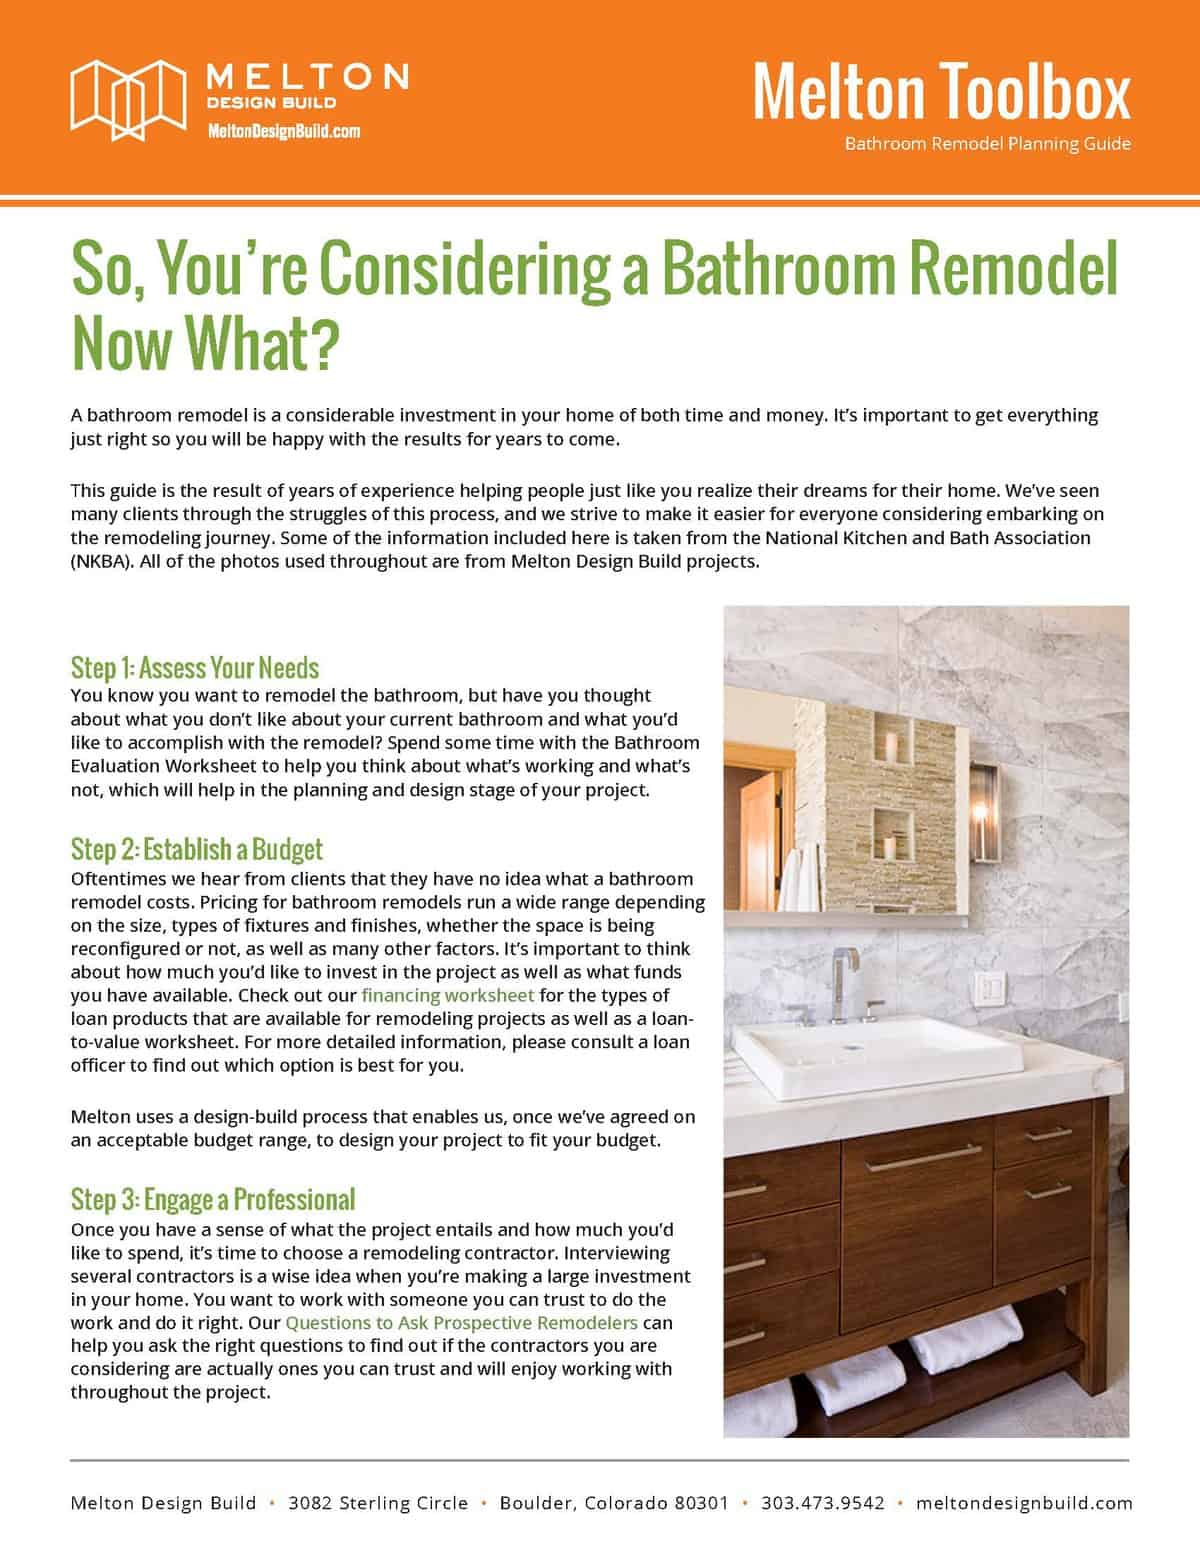 Bathroom Remodel Planning GuidePage Melton Design Build - Bathroom remodeling boulder colorado